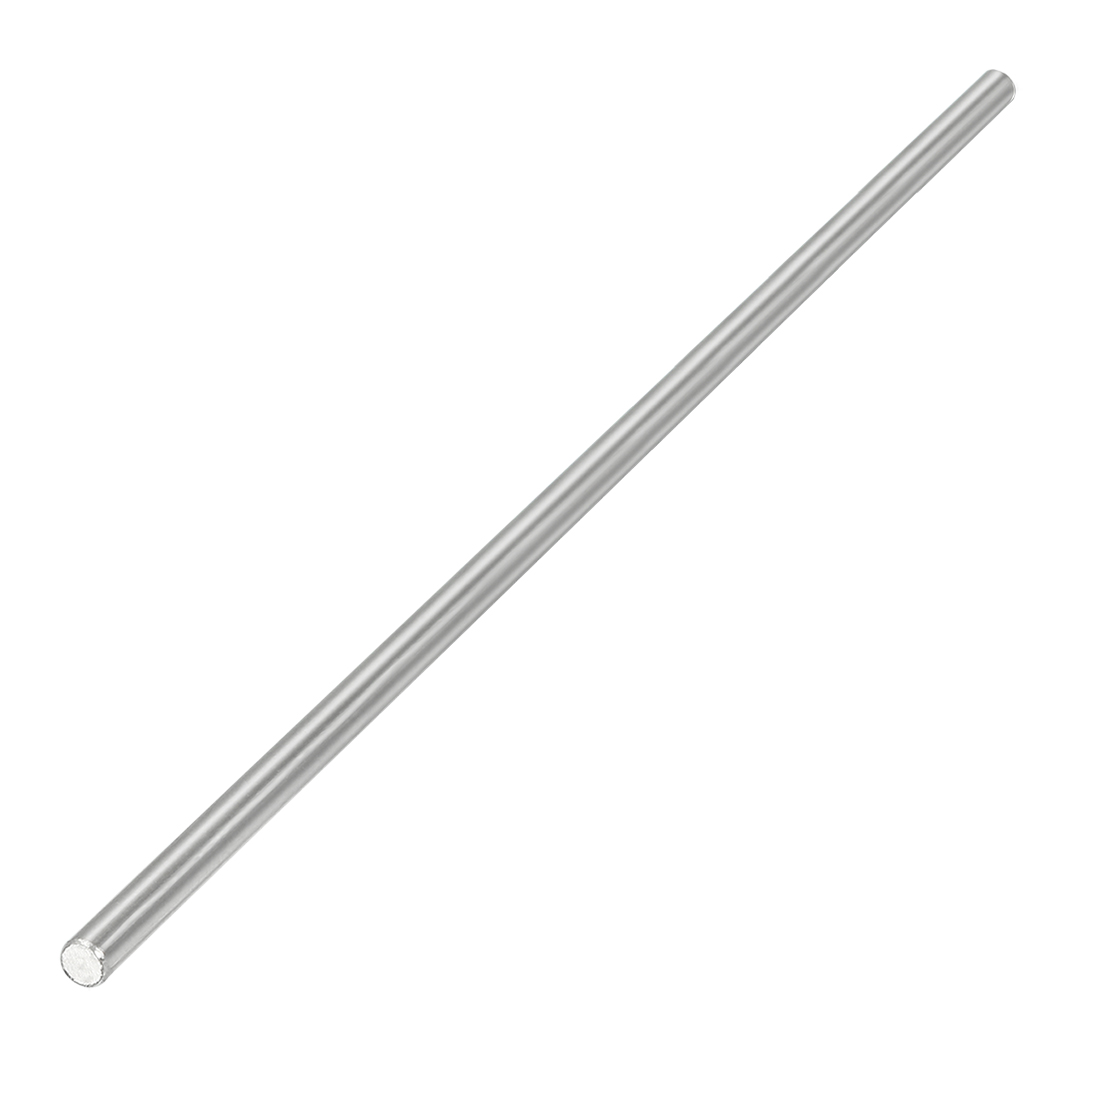 2mm Dia 130mm Length Stainless Steel Solid Round Shaft Rod for RC Model Toy